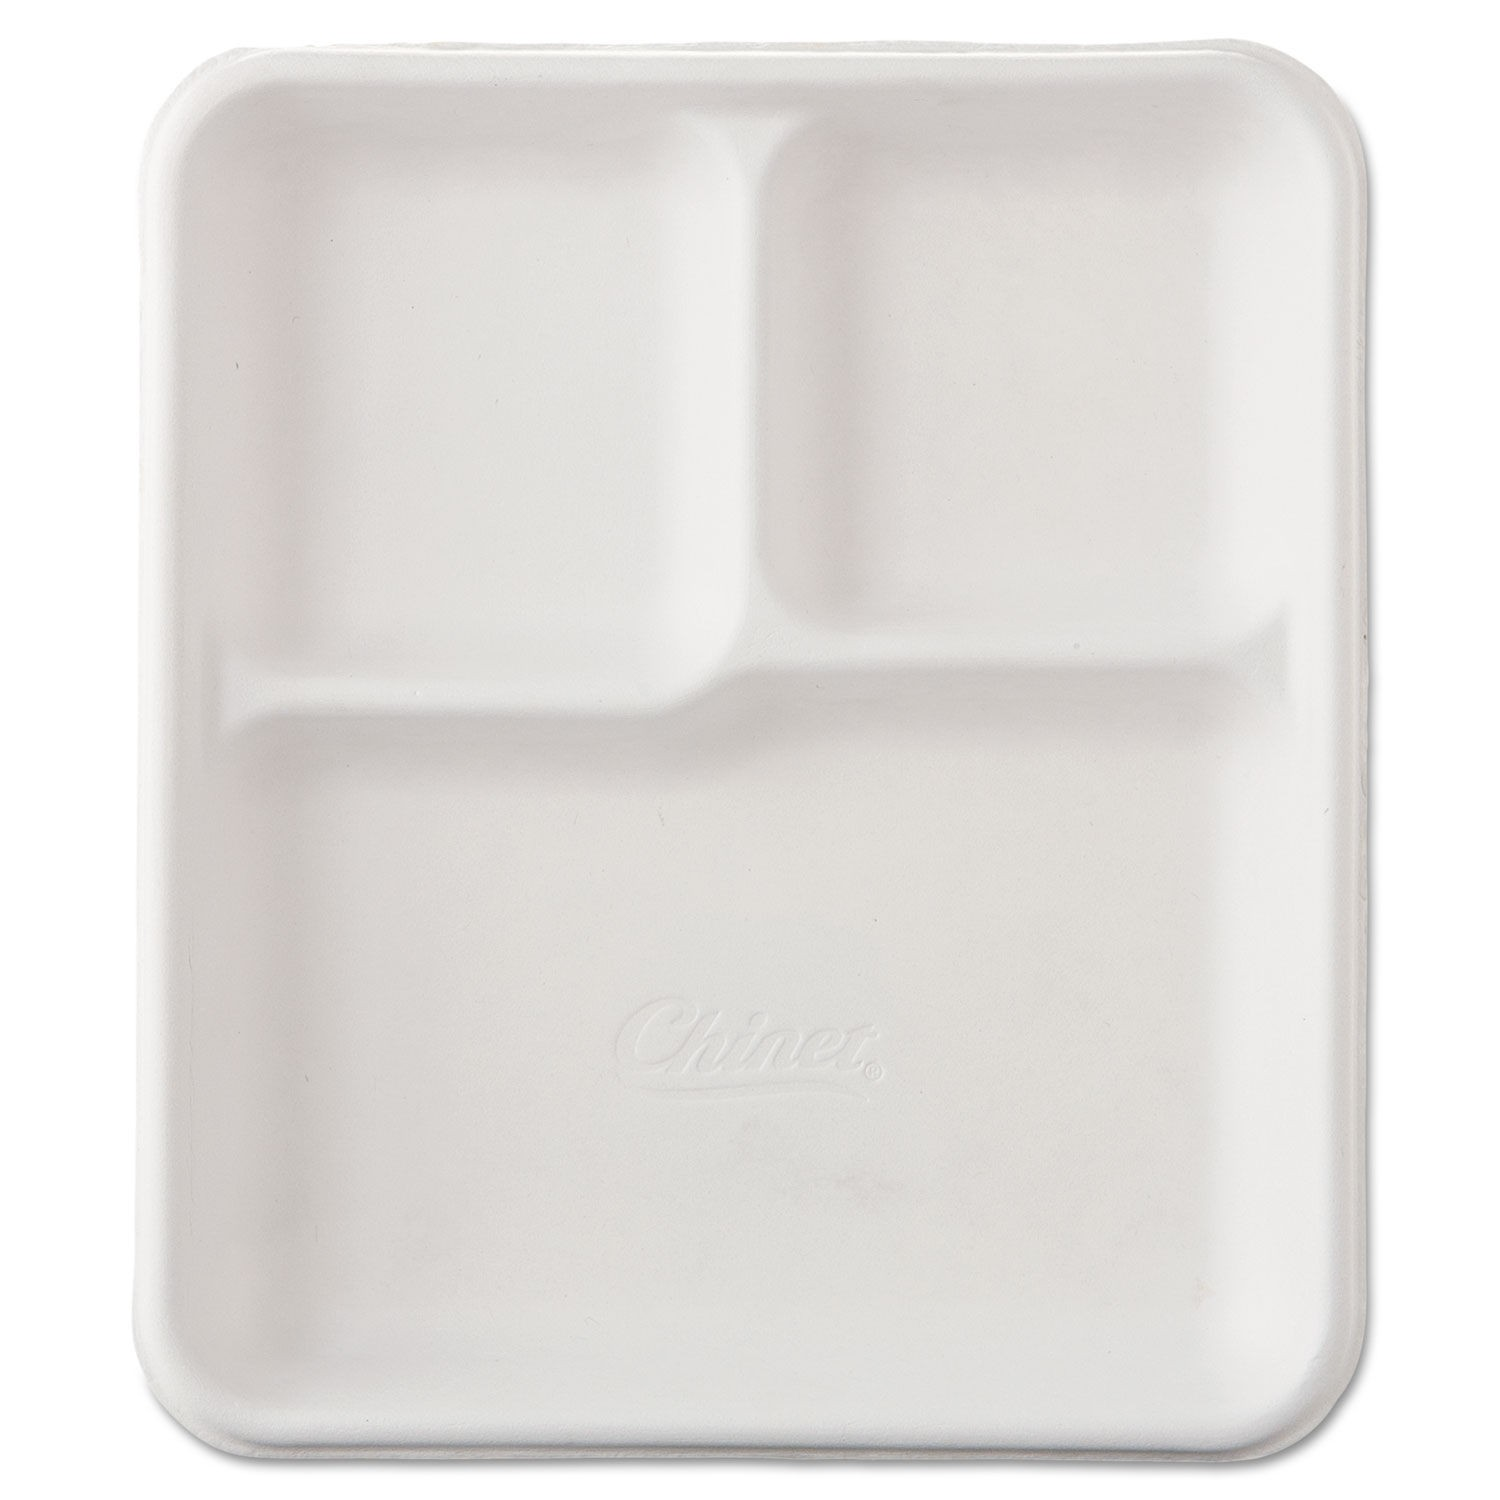 Heavy-Weight Molded Fiber Cafe Tray, 3-Compartment, 8 1/4x9 1/2, 125/Bag